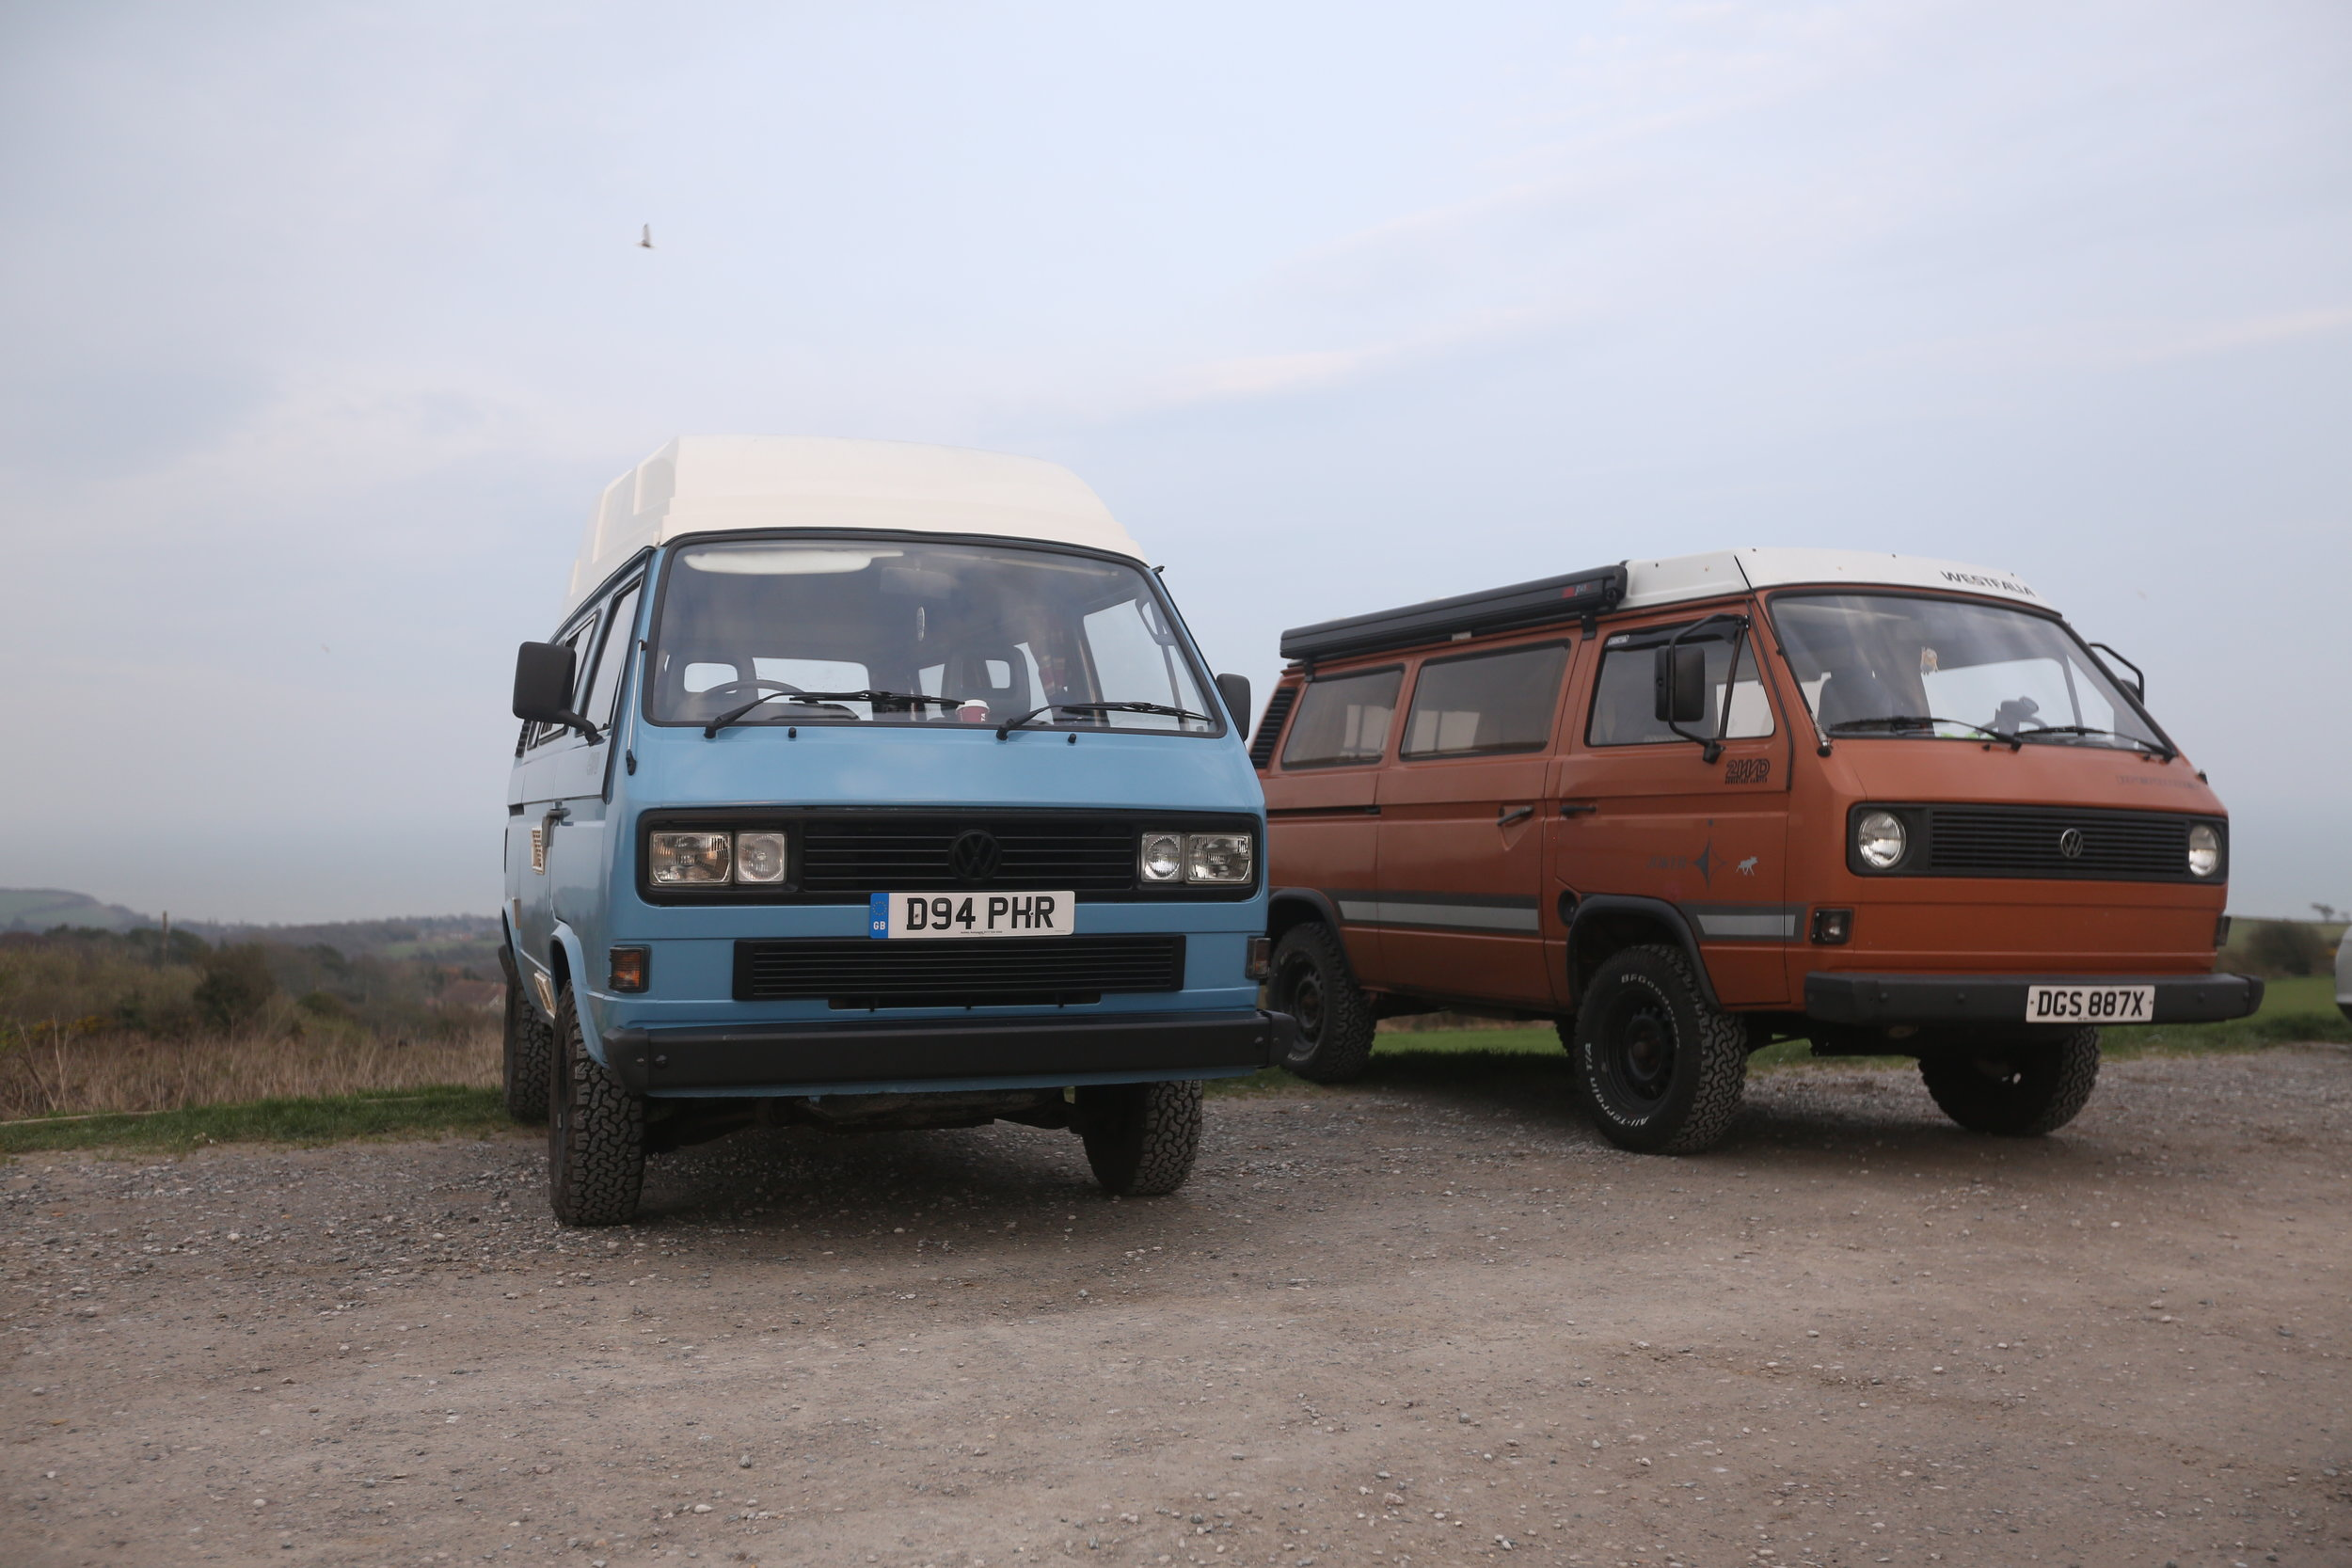 Darren's 2.0 air cooled adventure van.